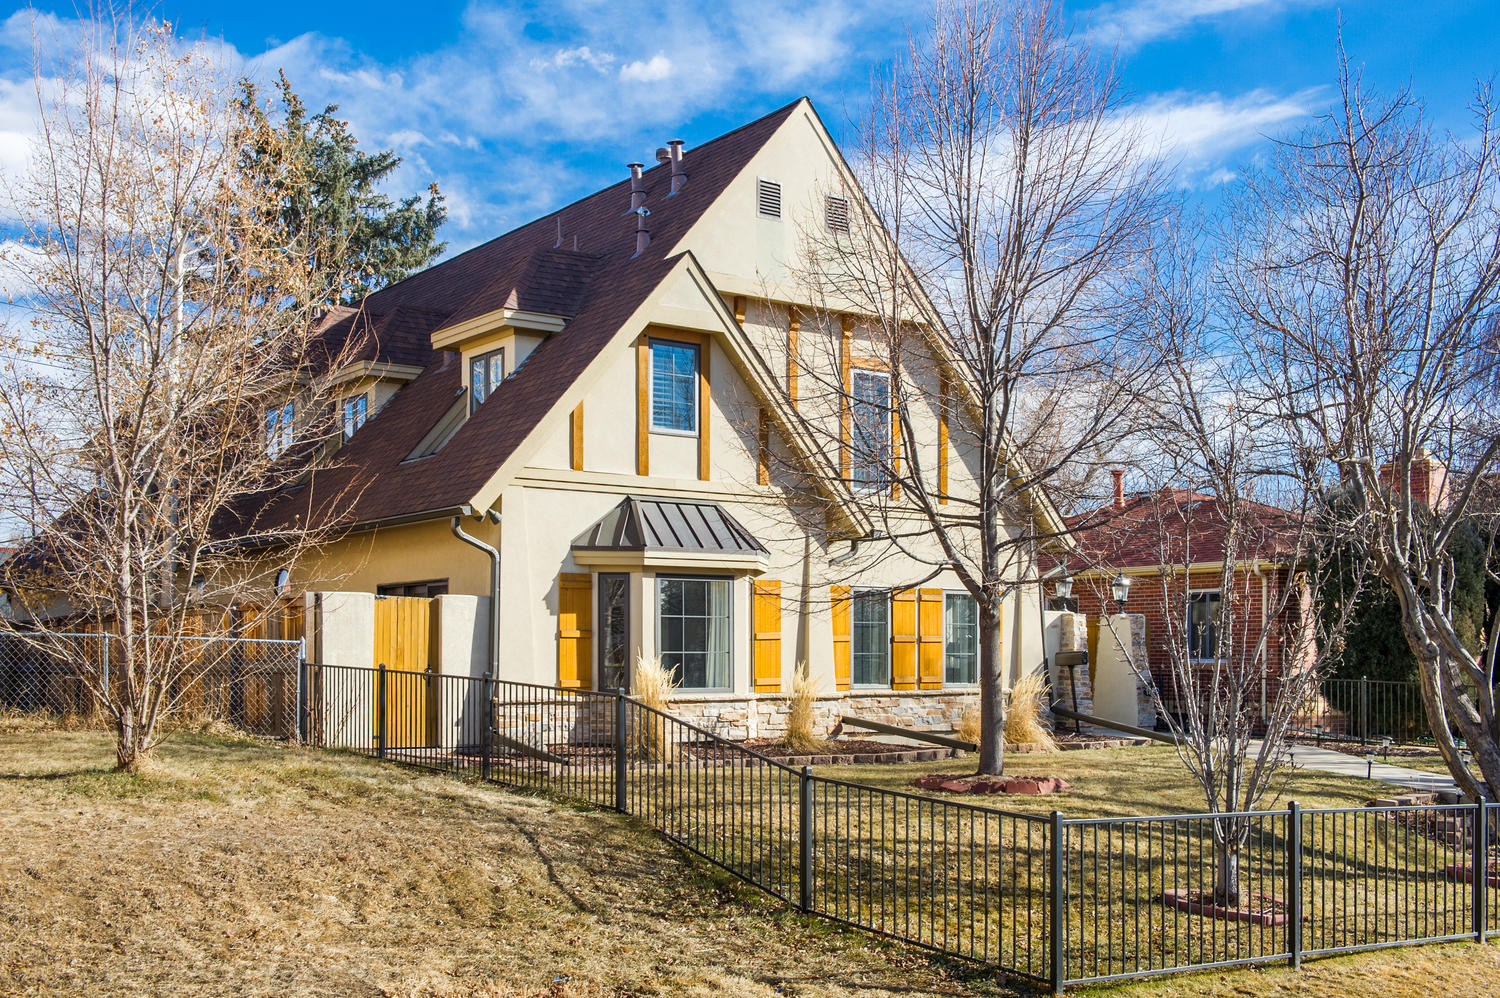 Single Family Home for Sale at 1280 South Saint Paul Street Cory-Merrill, Denver, Colorado, 80210 United States